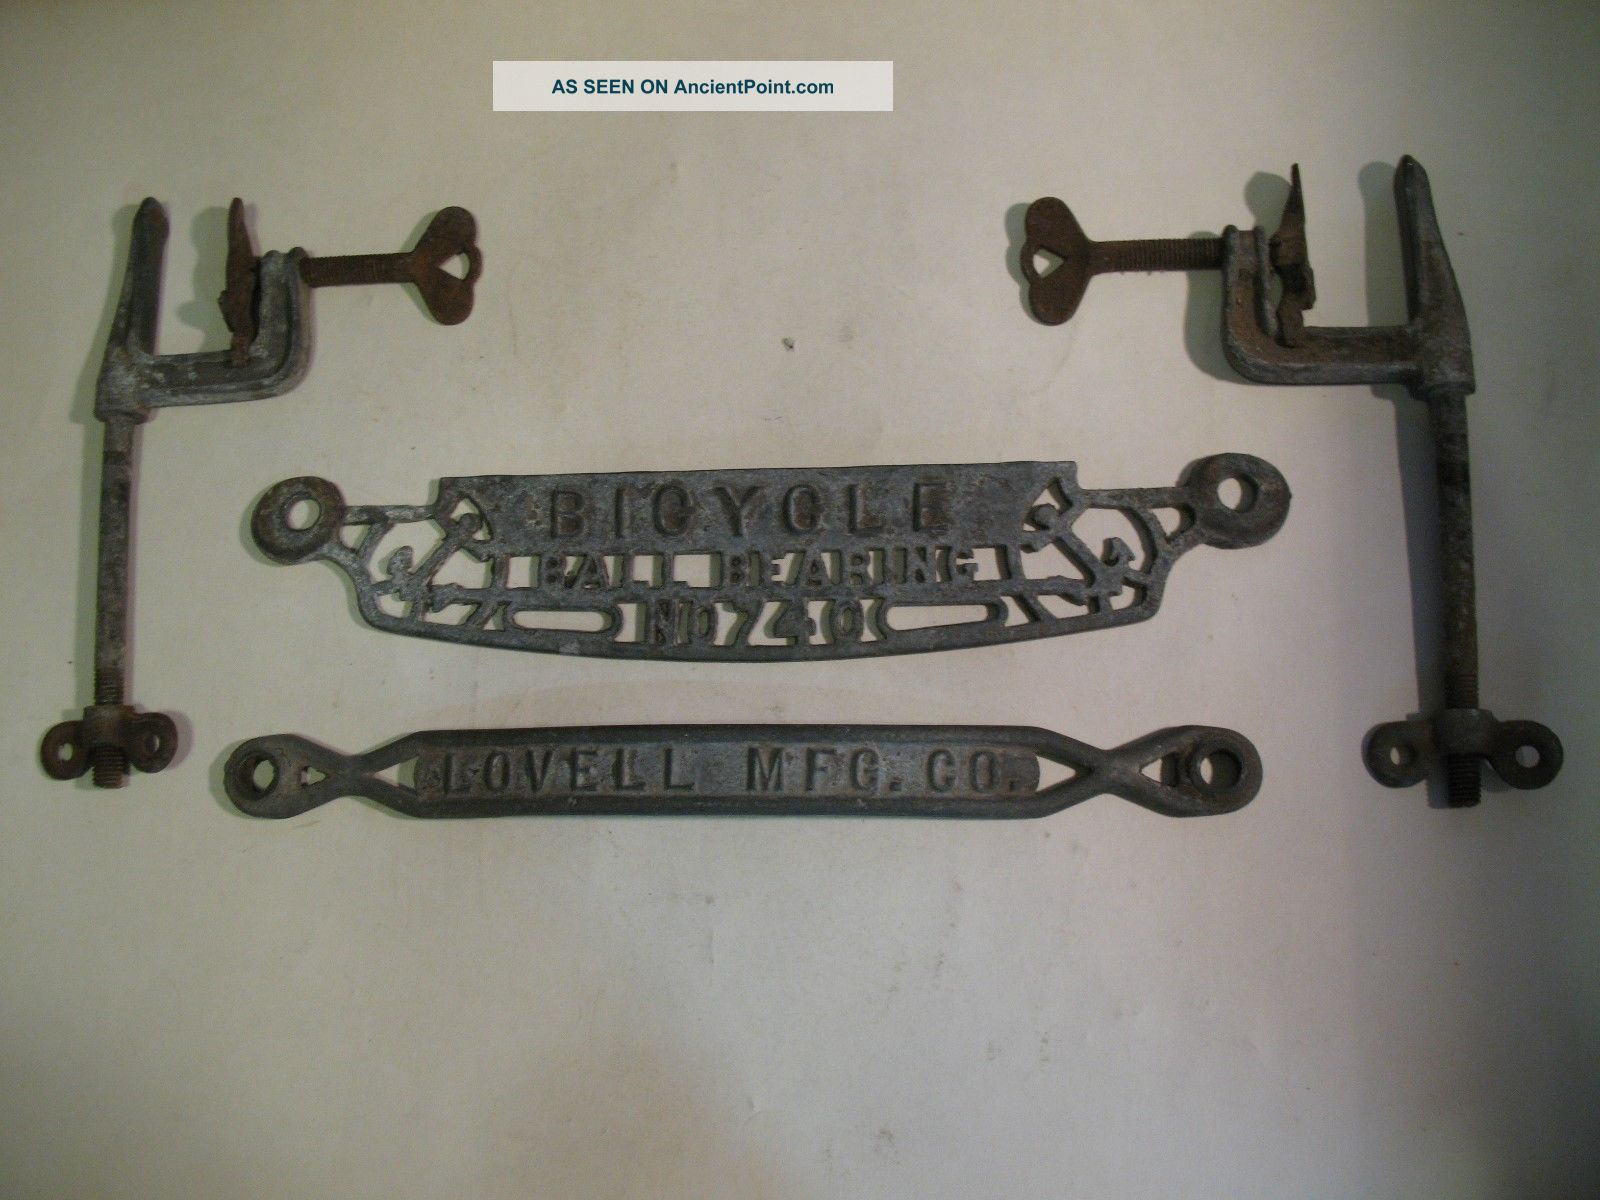 1900s Washing Machine Wringer Signs/parts Bicycle 740 Lovell Mfg Co Clamps Washing Machines photo